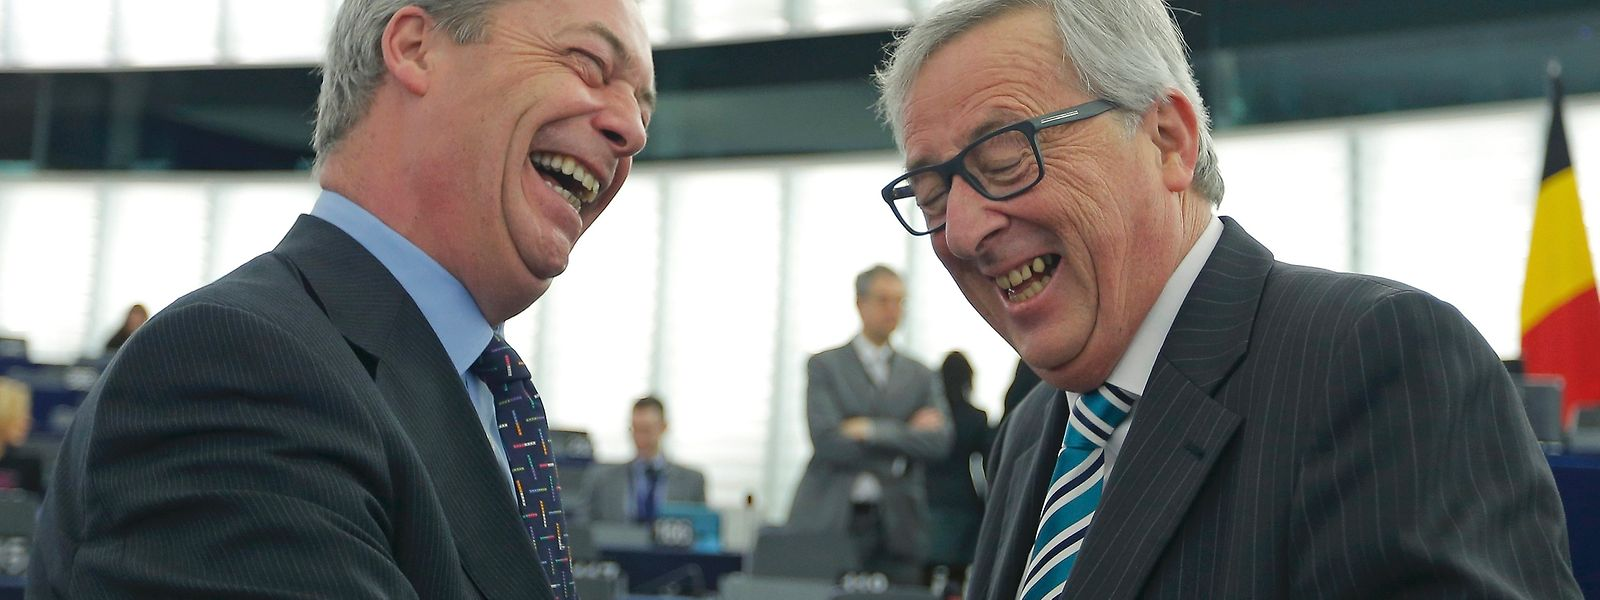 """Fair deal"": Ukip-Chef Nigel Farage, EU-Kommissionschef Jean-Claude Juncker."